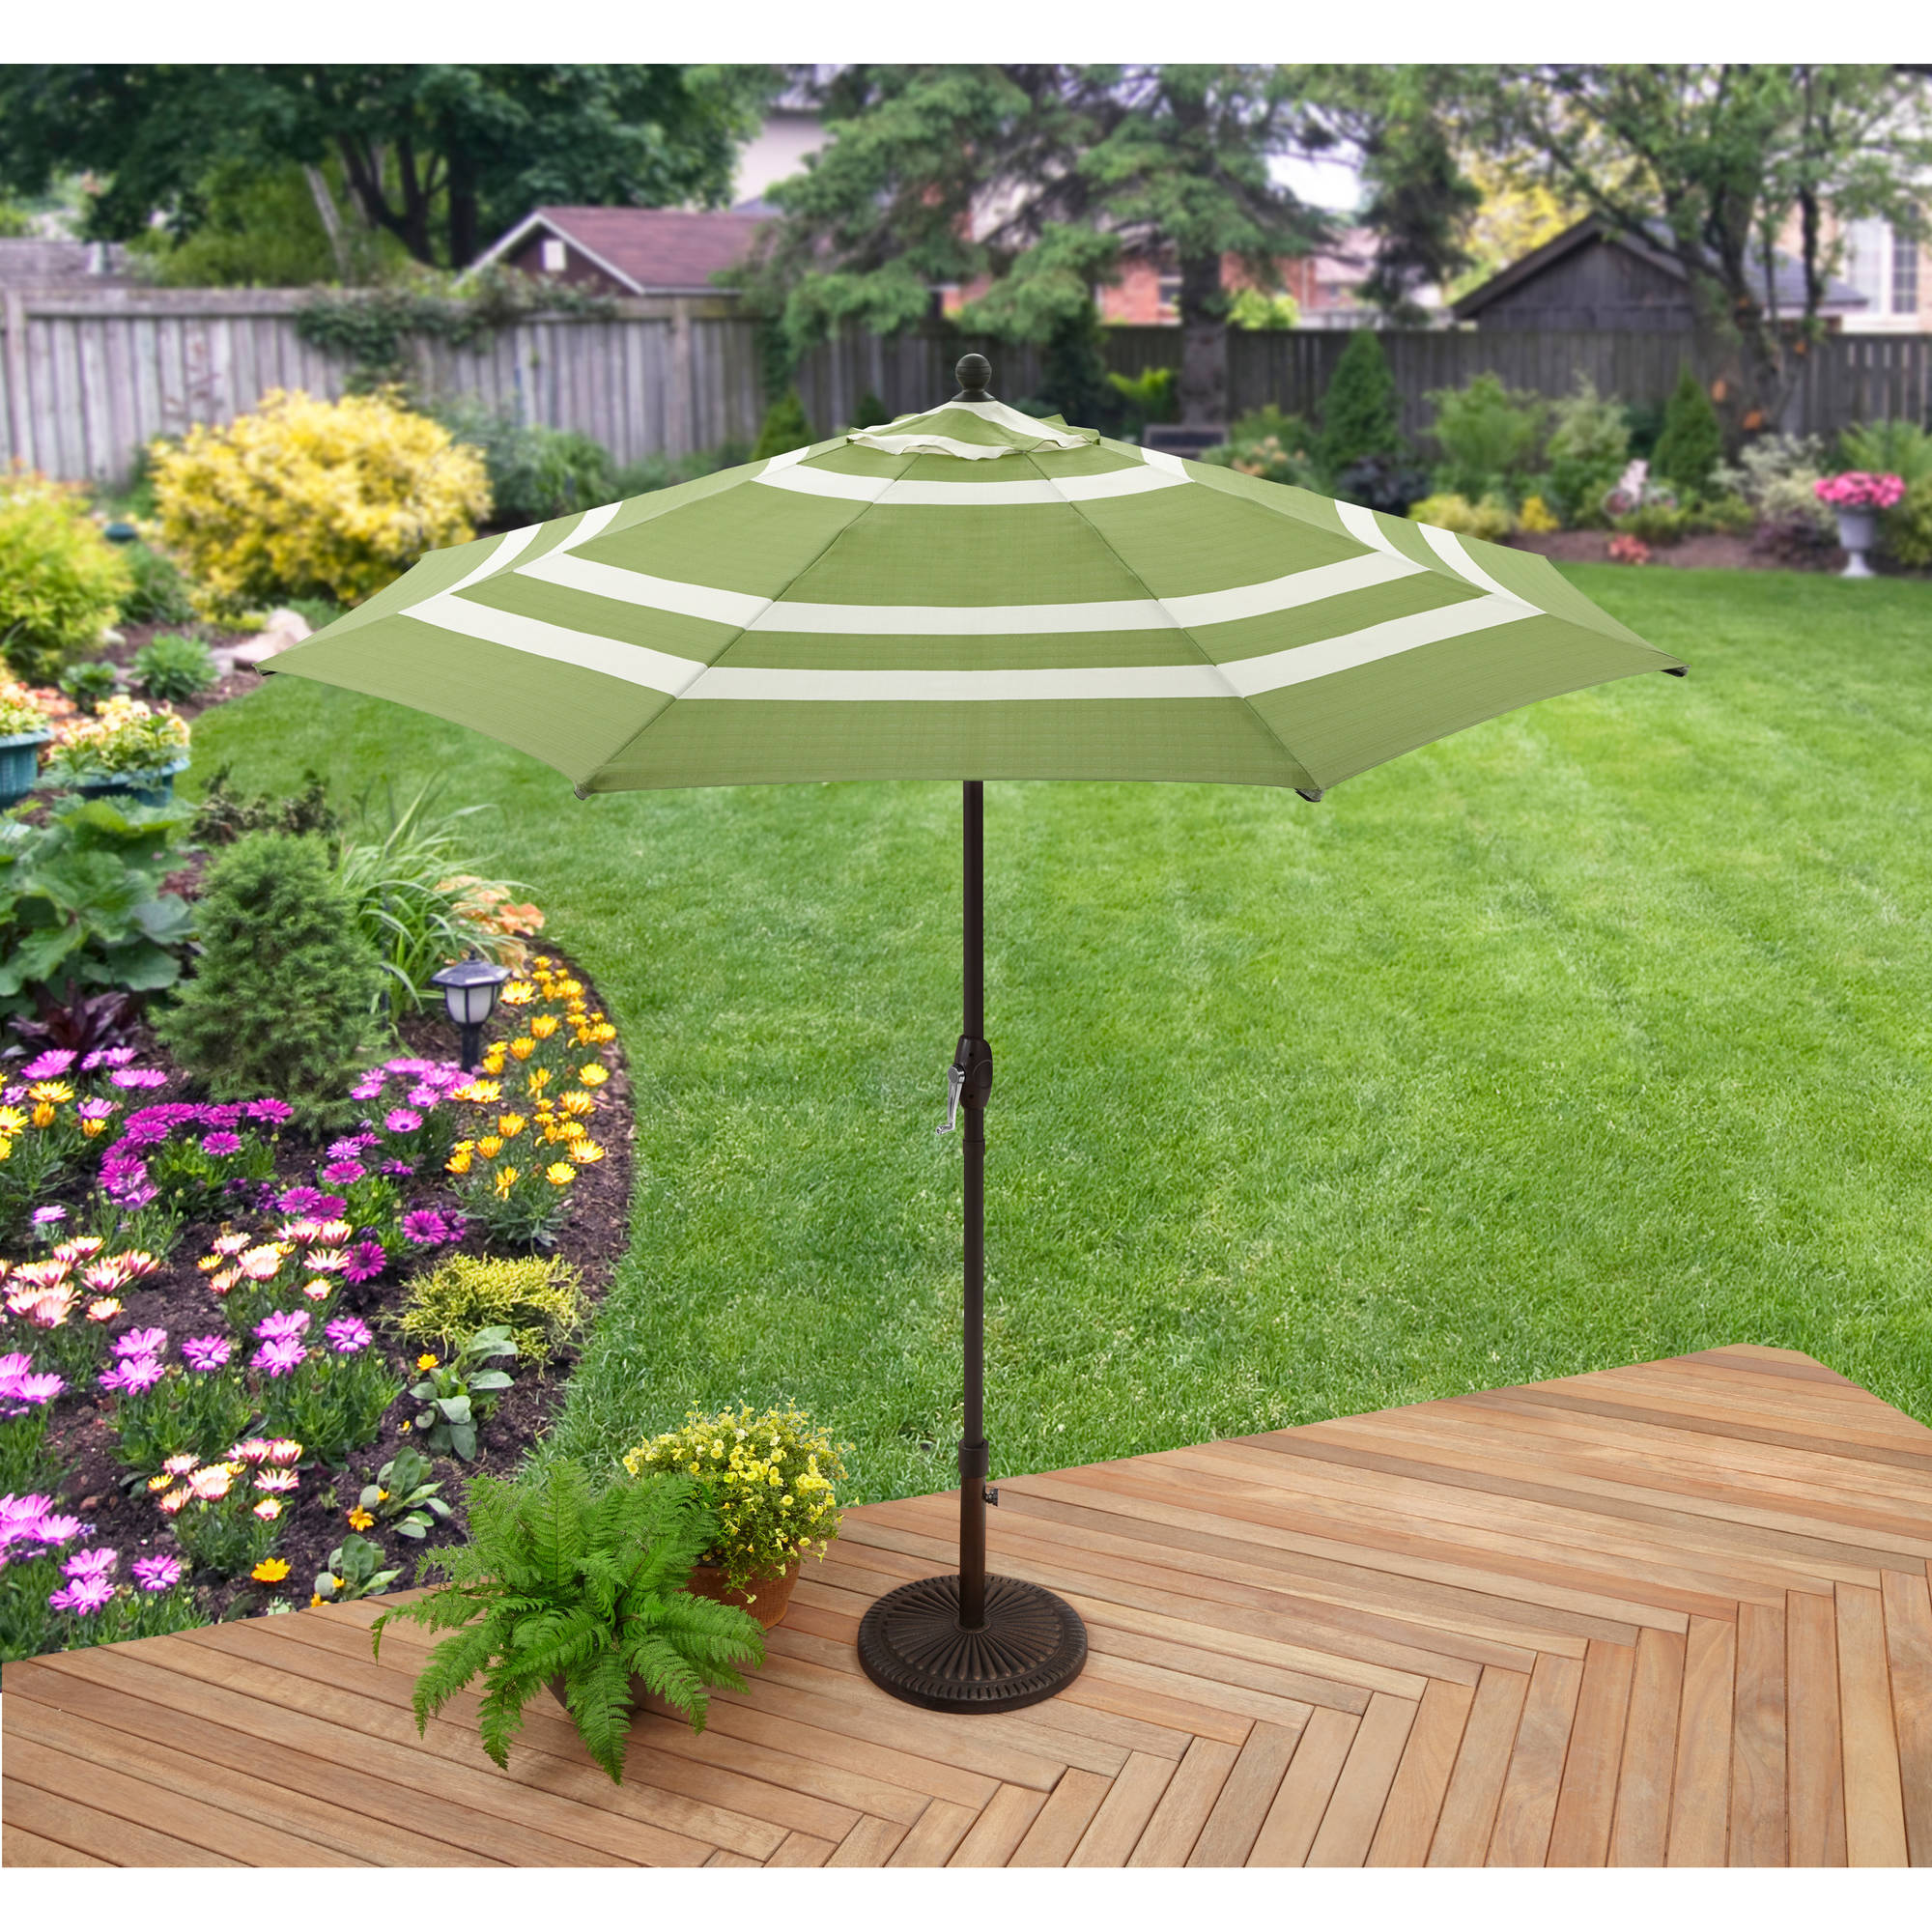 sun untitled marketing products agro ideal umbrella beach use multicolor protection for garden pepper outdoor feet lawn